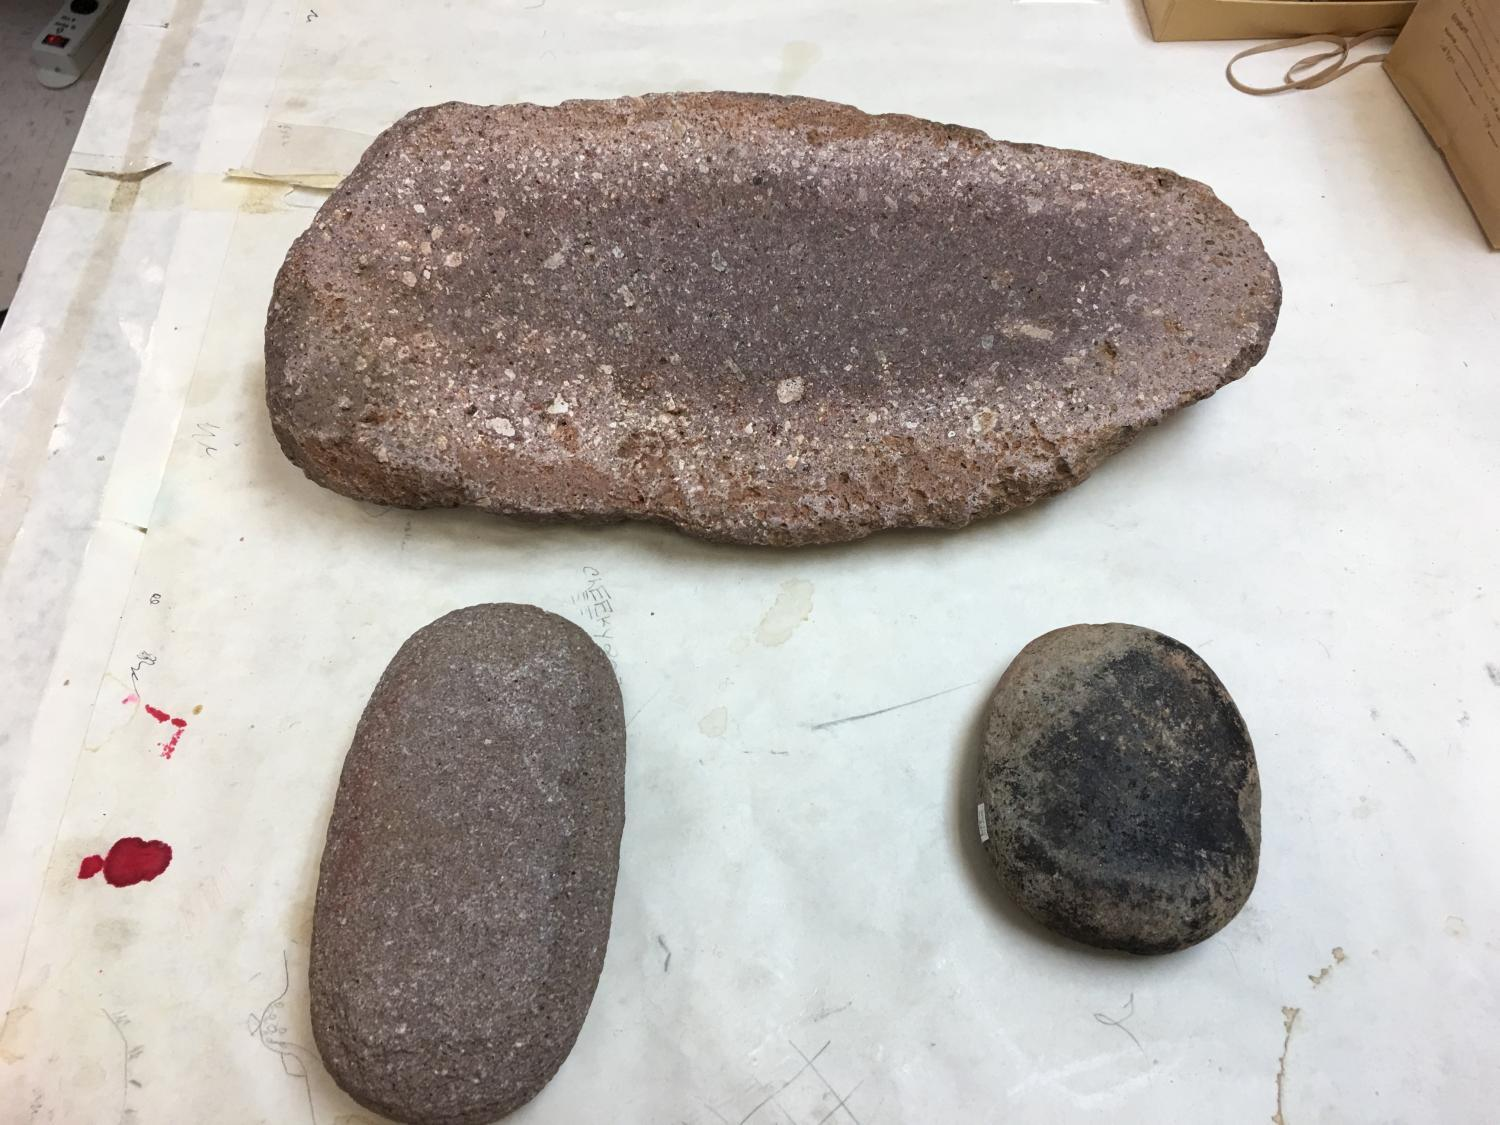 Metate and manos